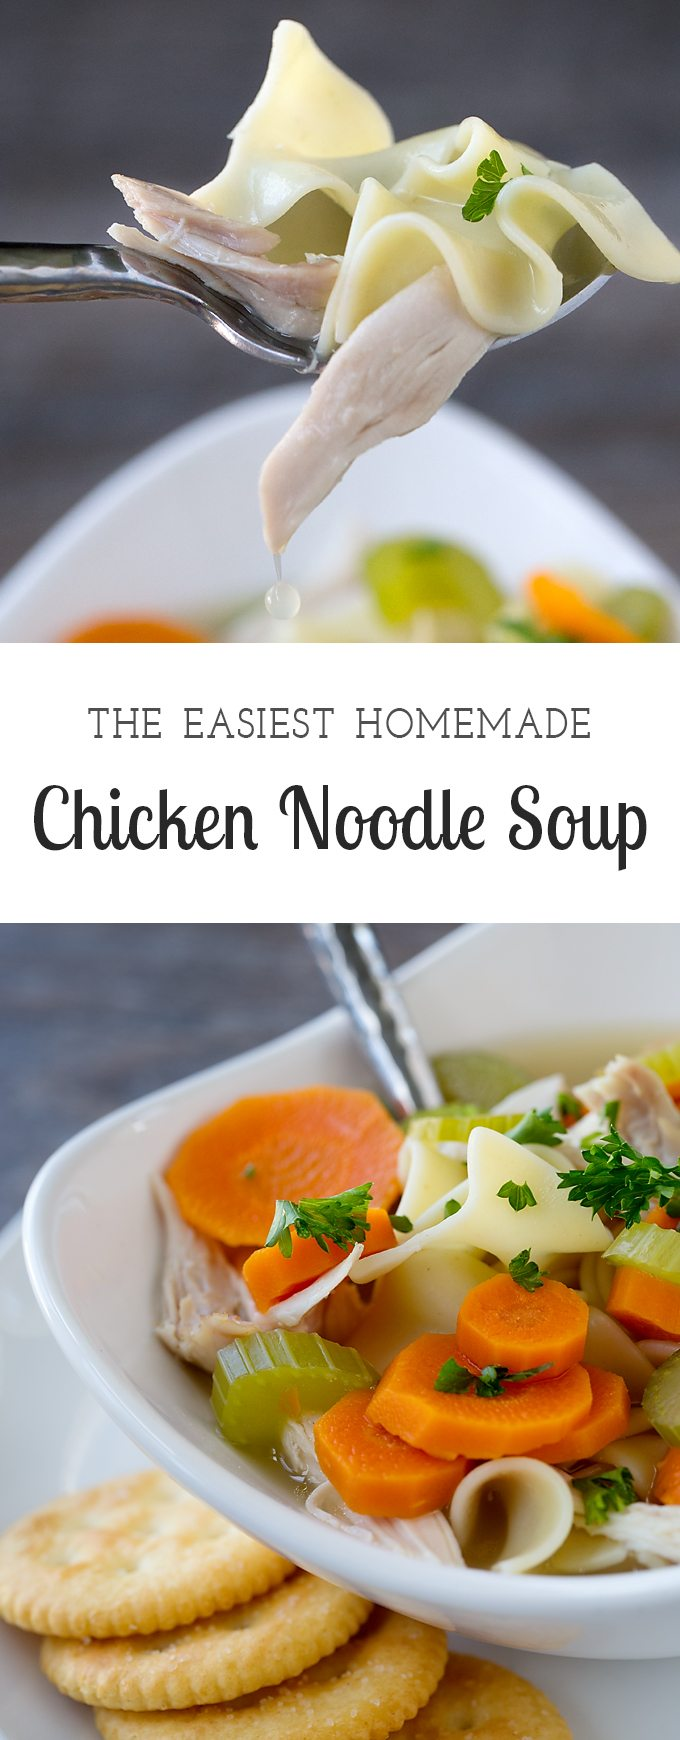 This is the easiest way to keep homemade chicken noodle soup in stock for cold weather, illness, or just because your family is craving a hearty lunch.